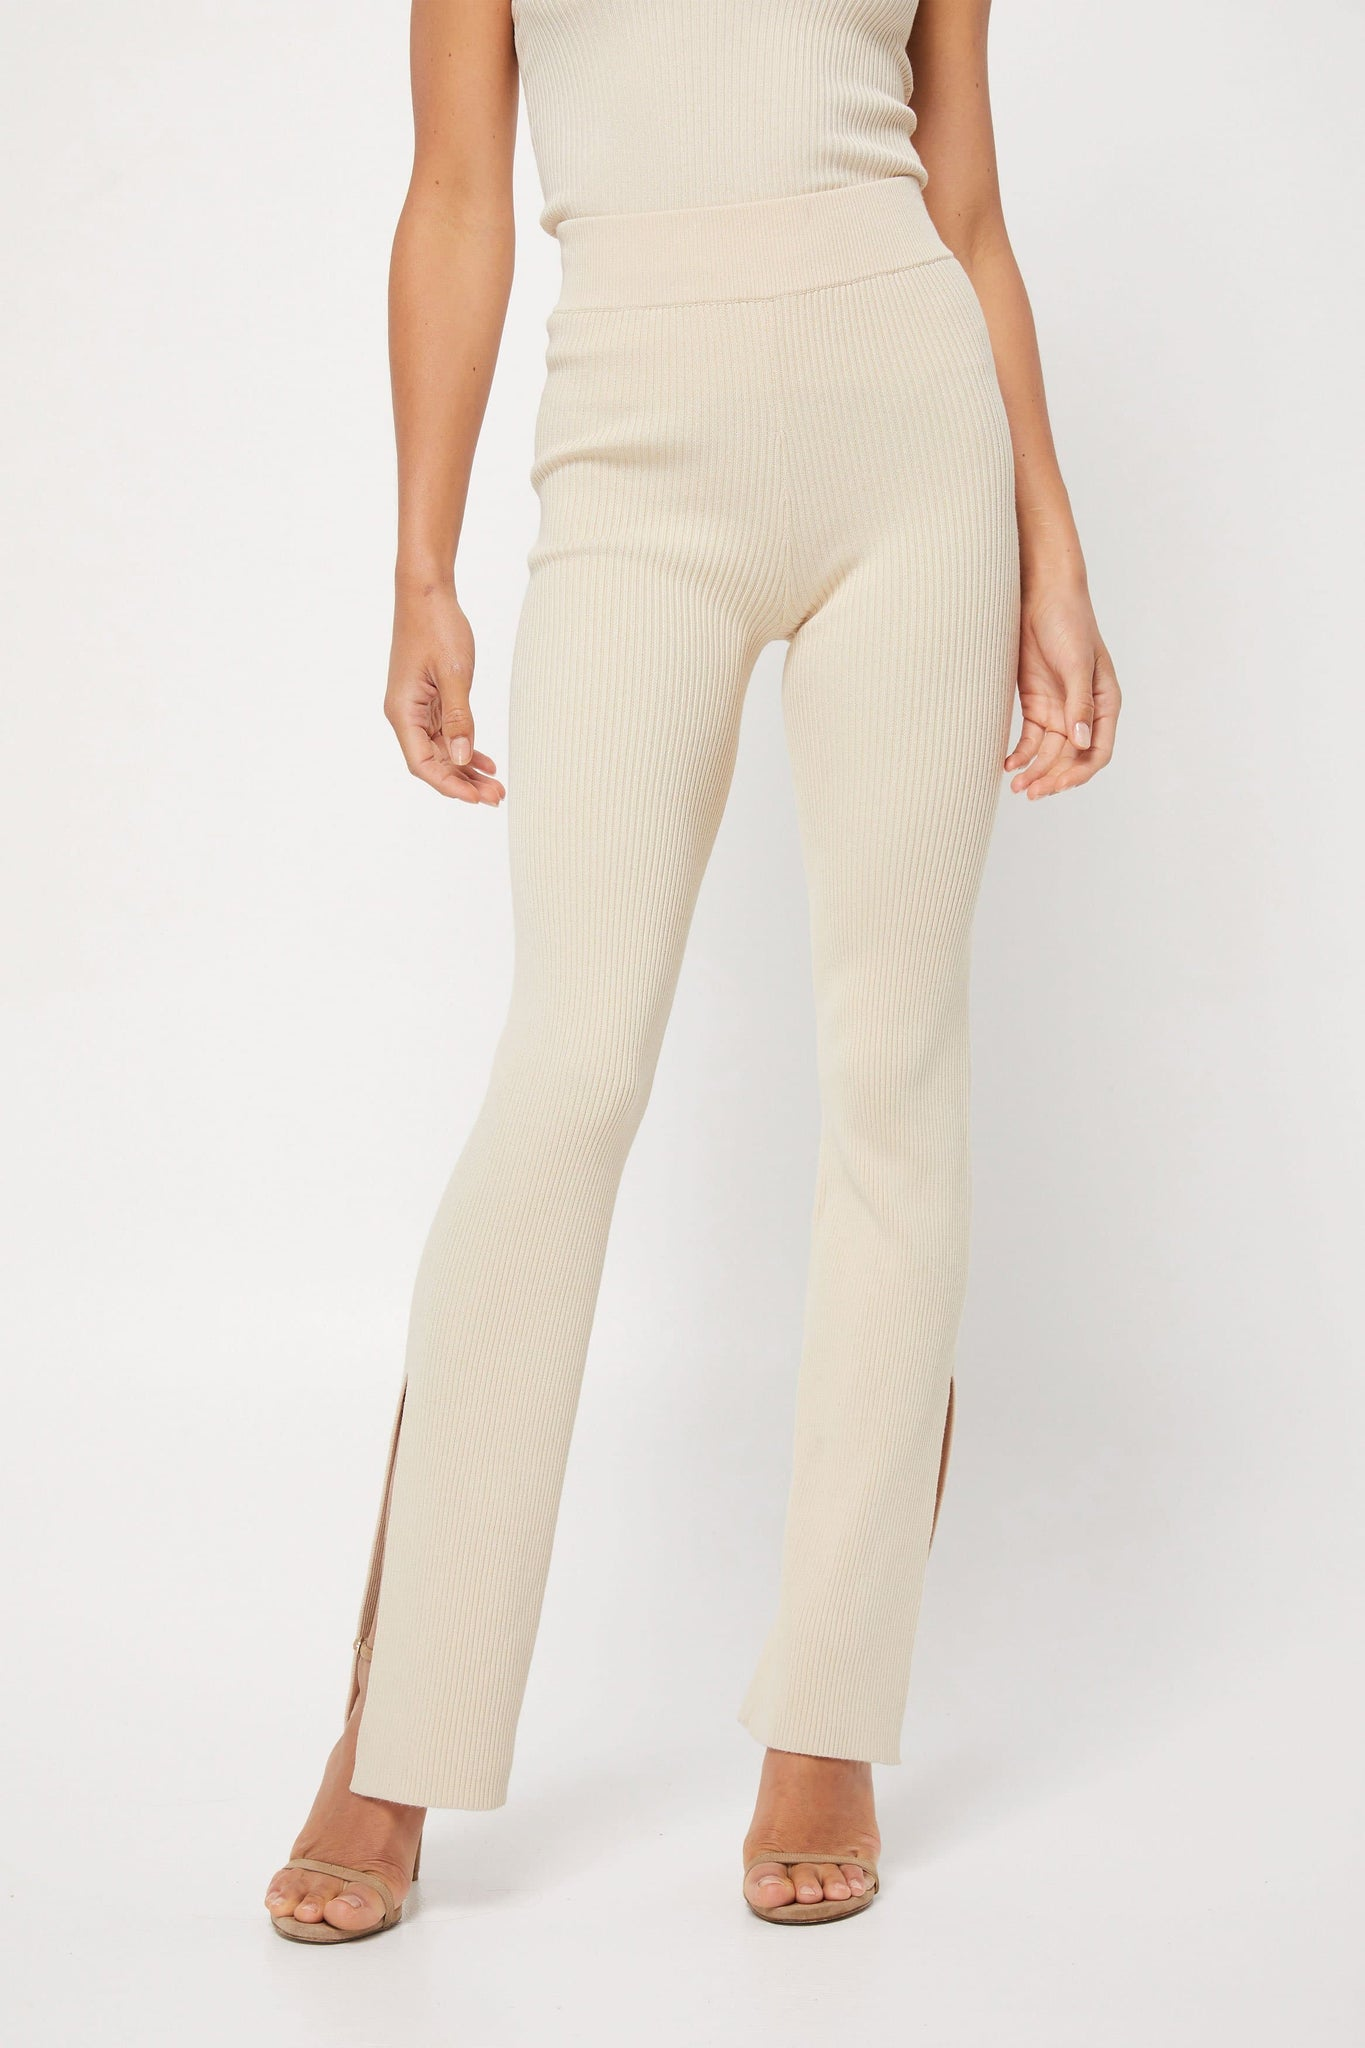 The Venice Knitted Pant